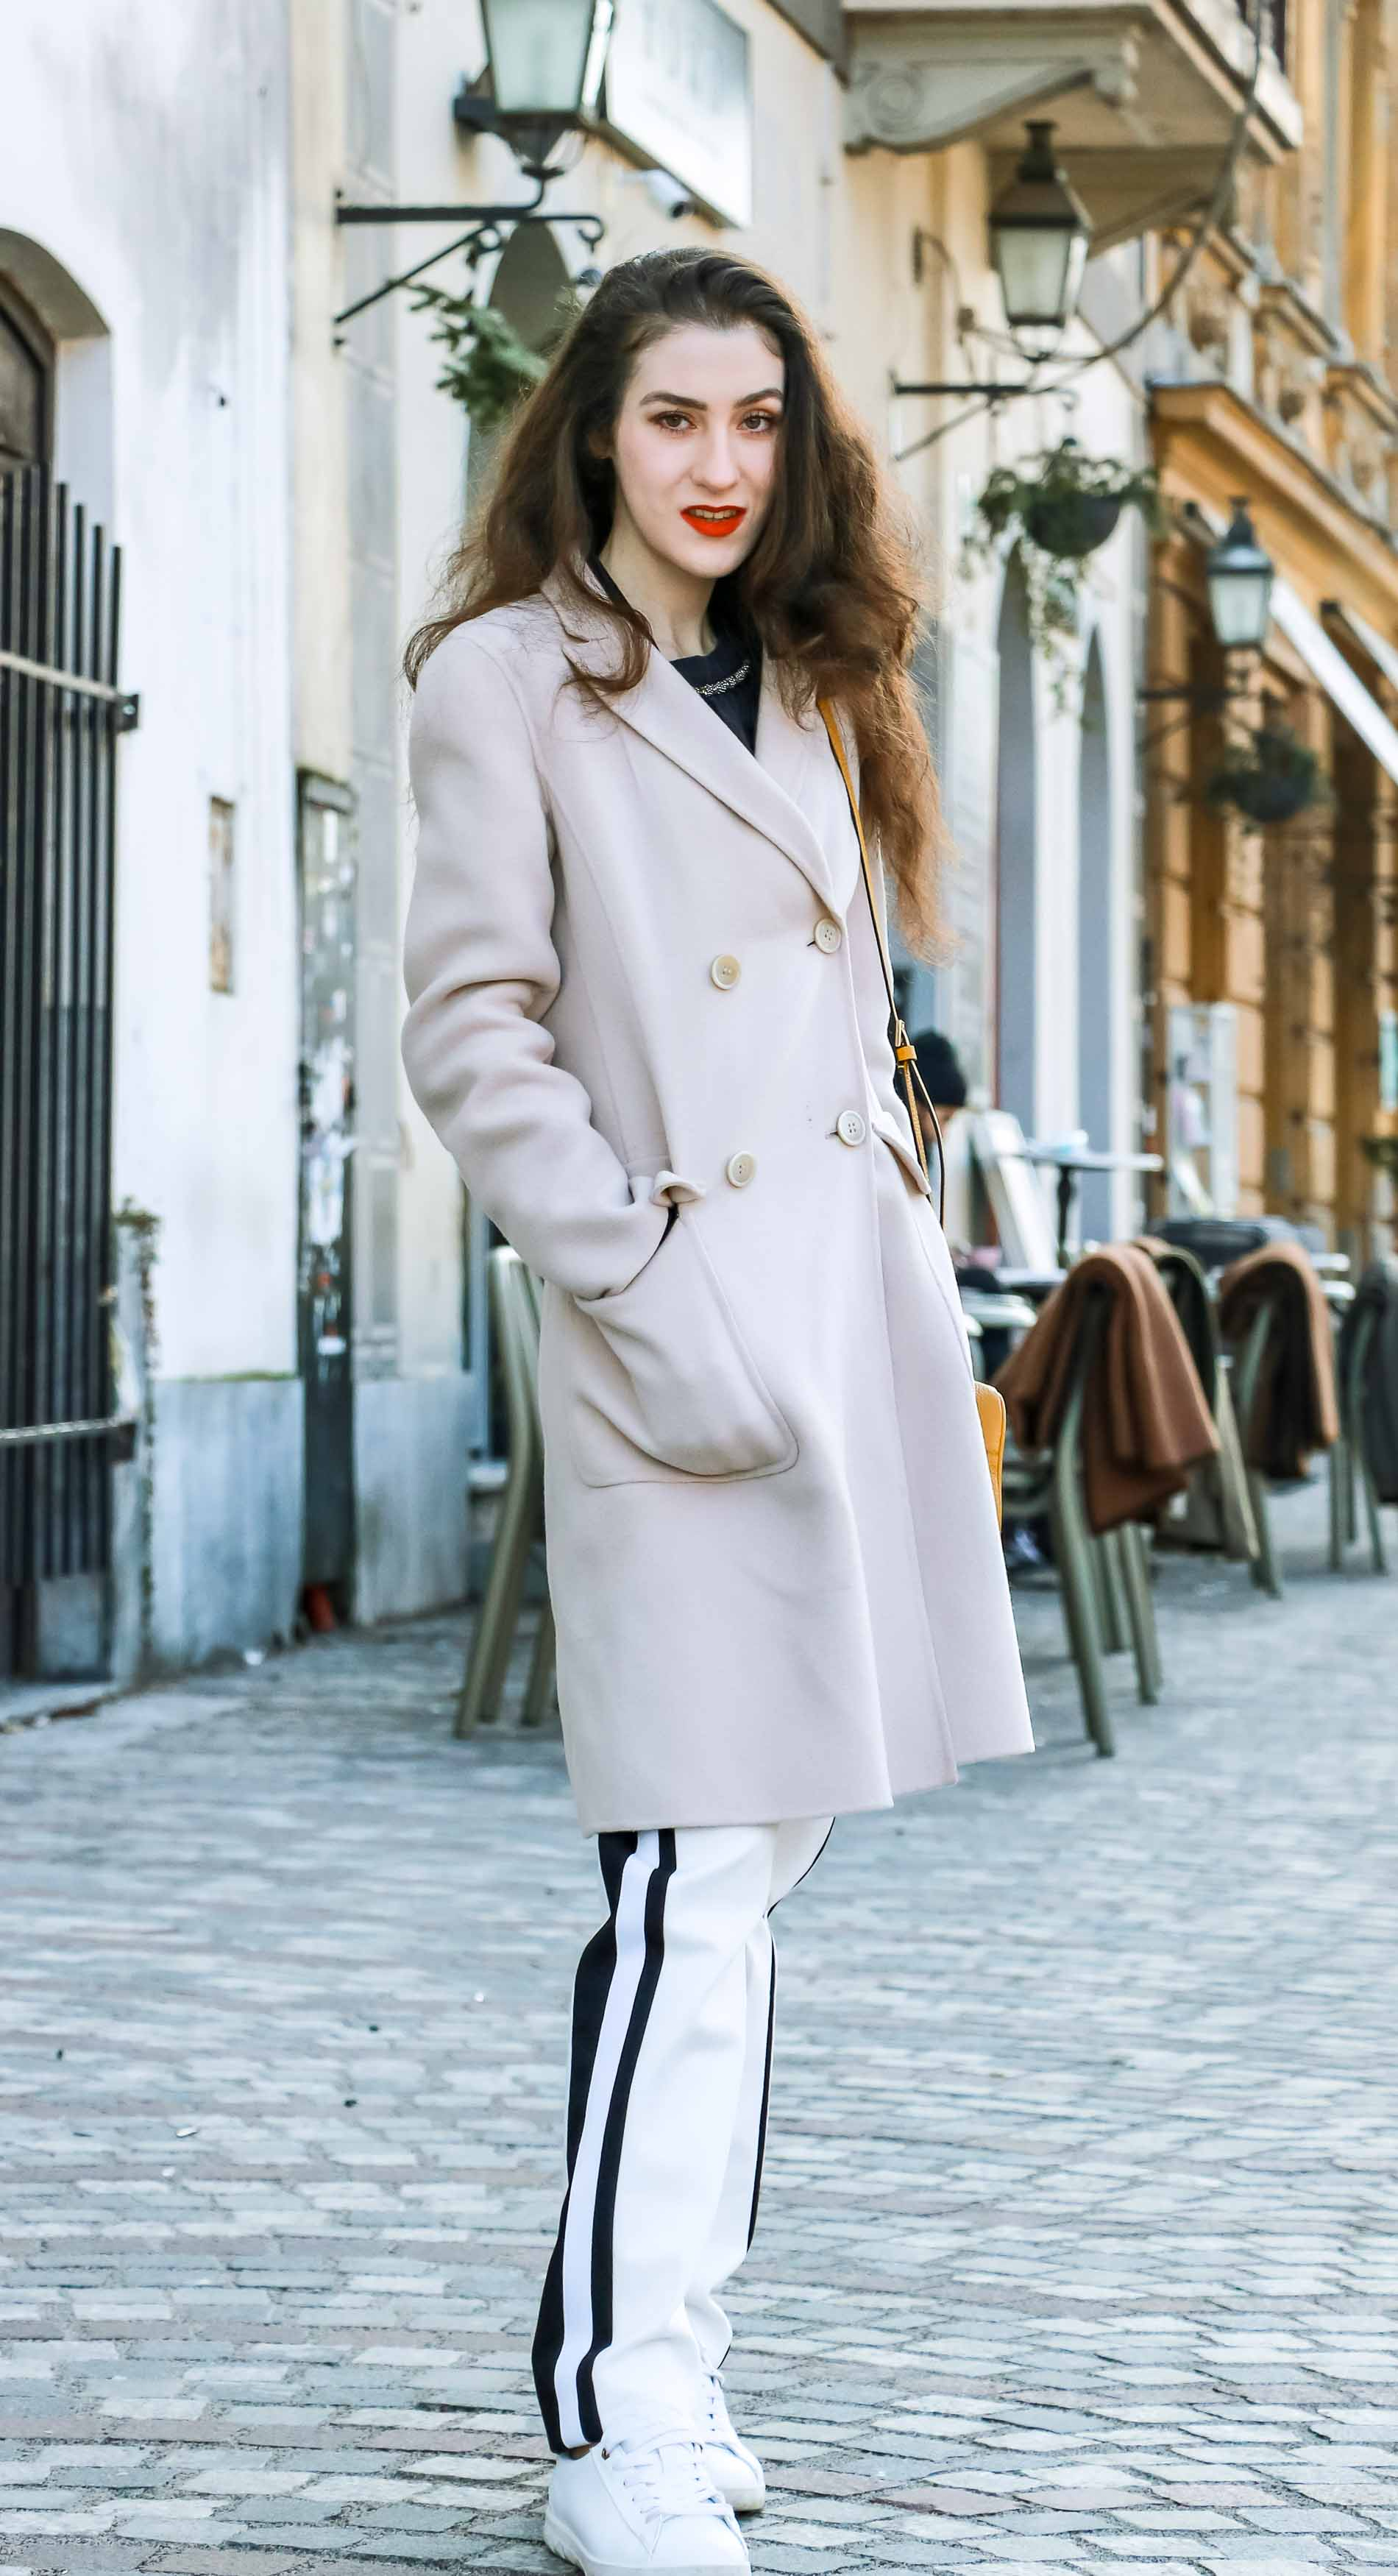 Fashion Blogger Veronika Lipar of Brunette from Wall Street wearing white track pants with black side stripe from Escada, black silk blouse, off-white pastel double breasted coat from Weekend Max Mara, white leather sneakers from Diesel, yellow logo shoulder bag with logo from Escada while walking down the street in Ljubljana